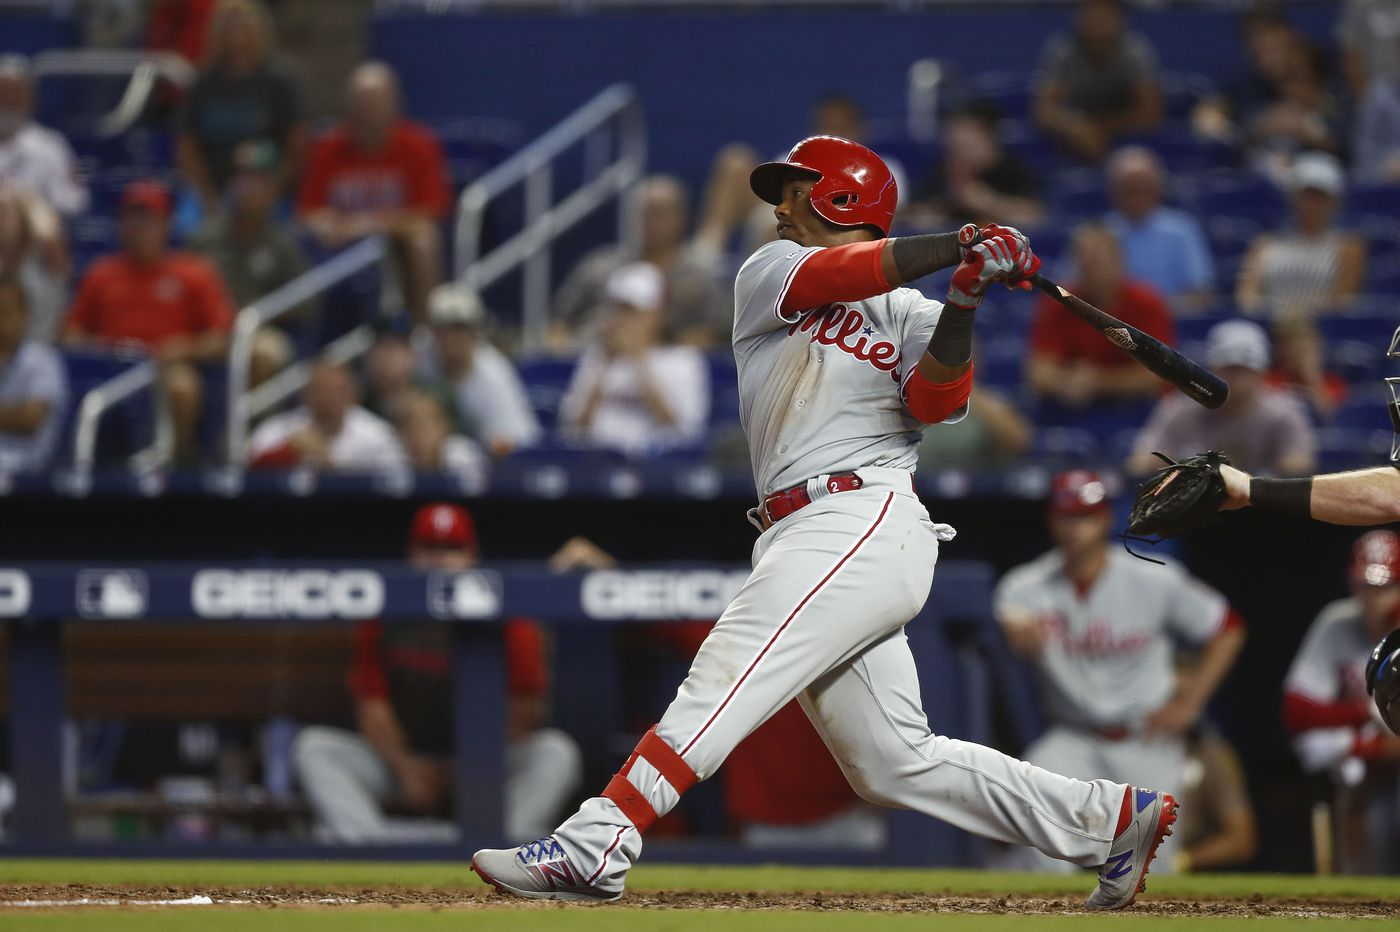 Seven relief pitchers, including revived Victor Arano, lead Phillies to 14-inning marathon win over Marlins